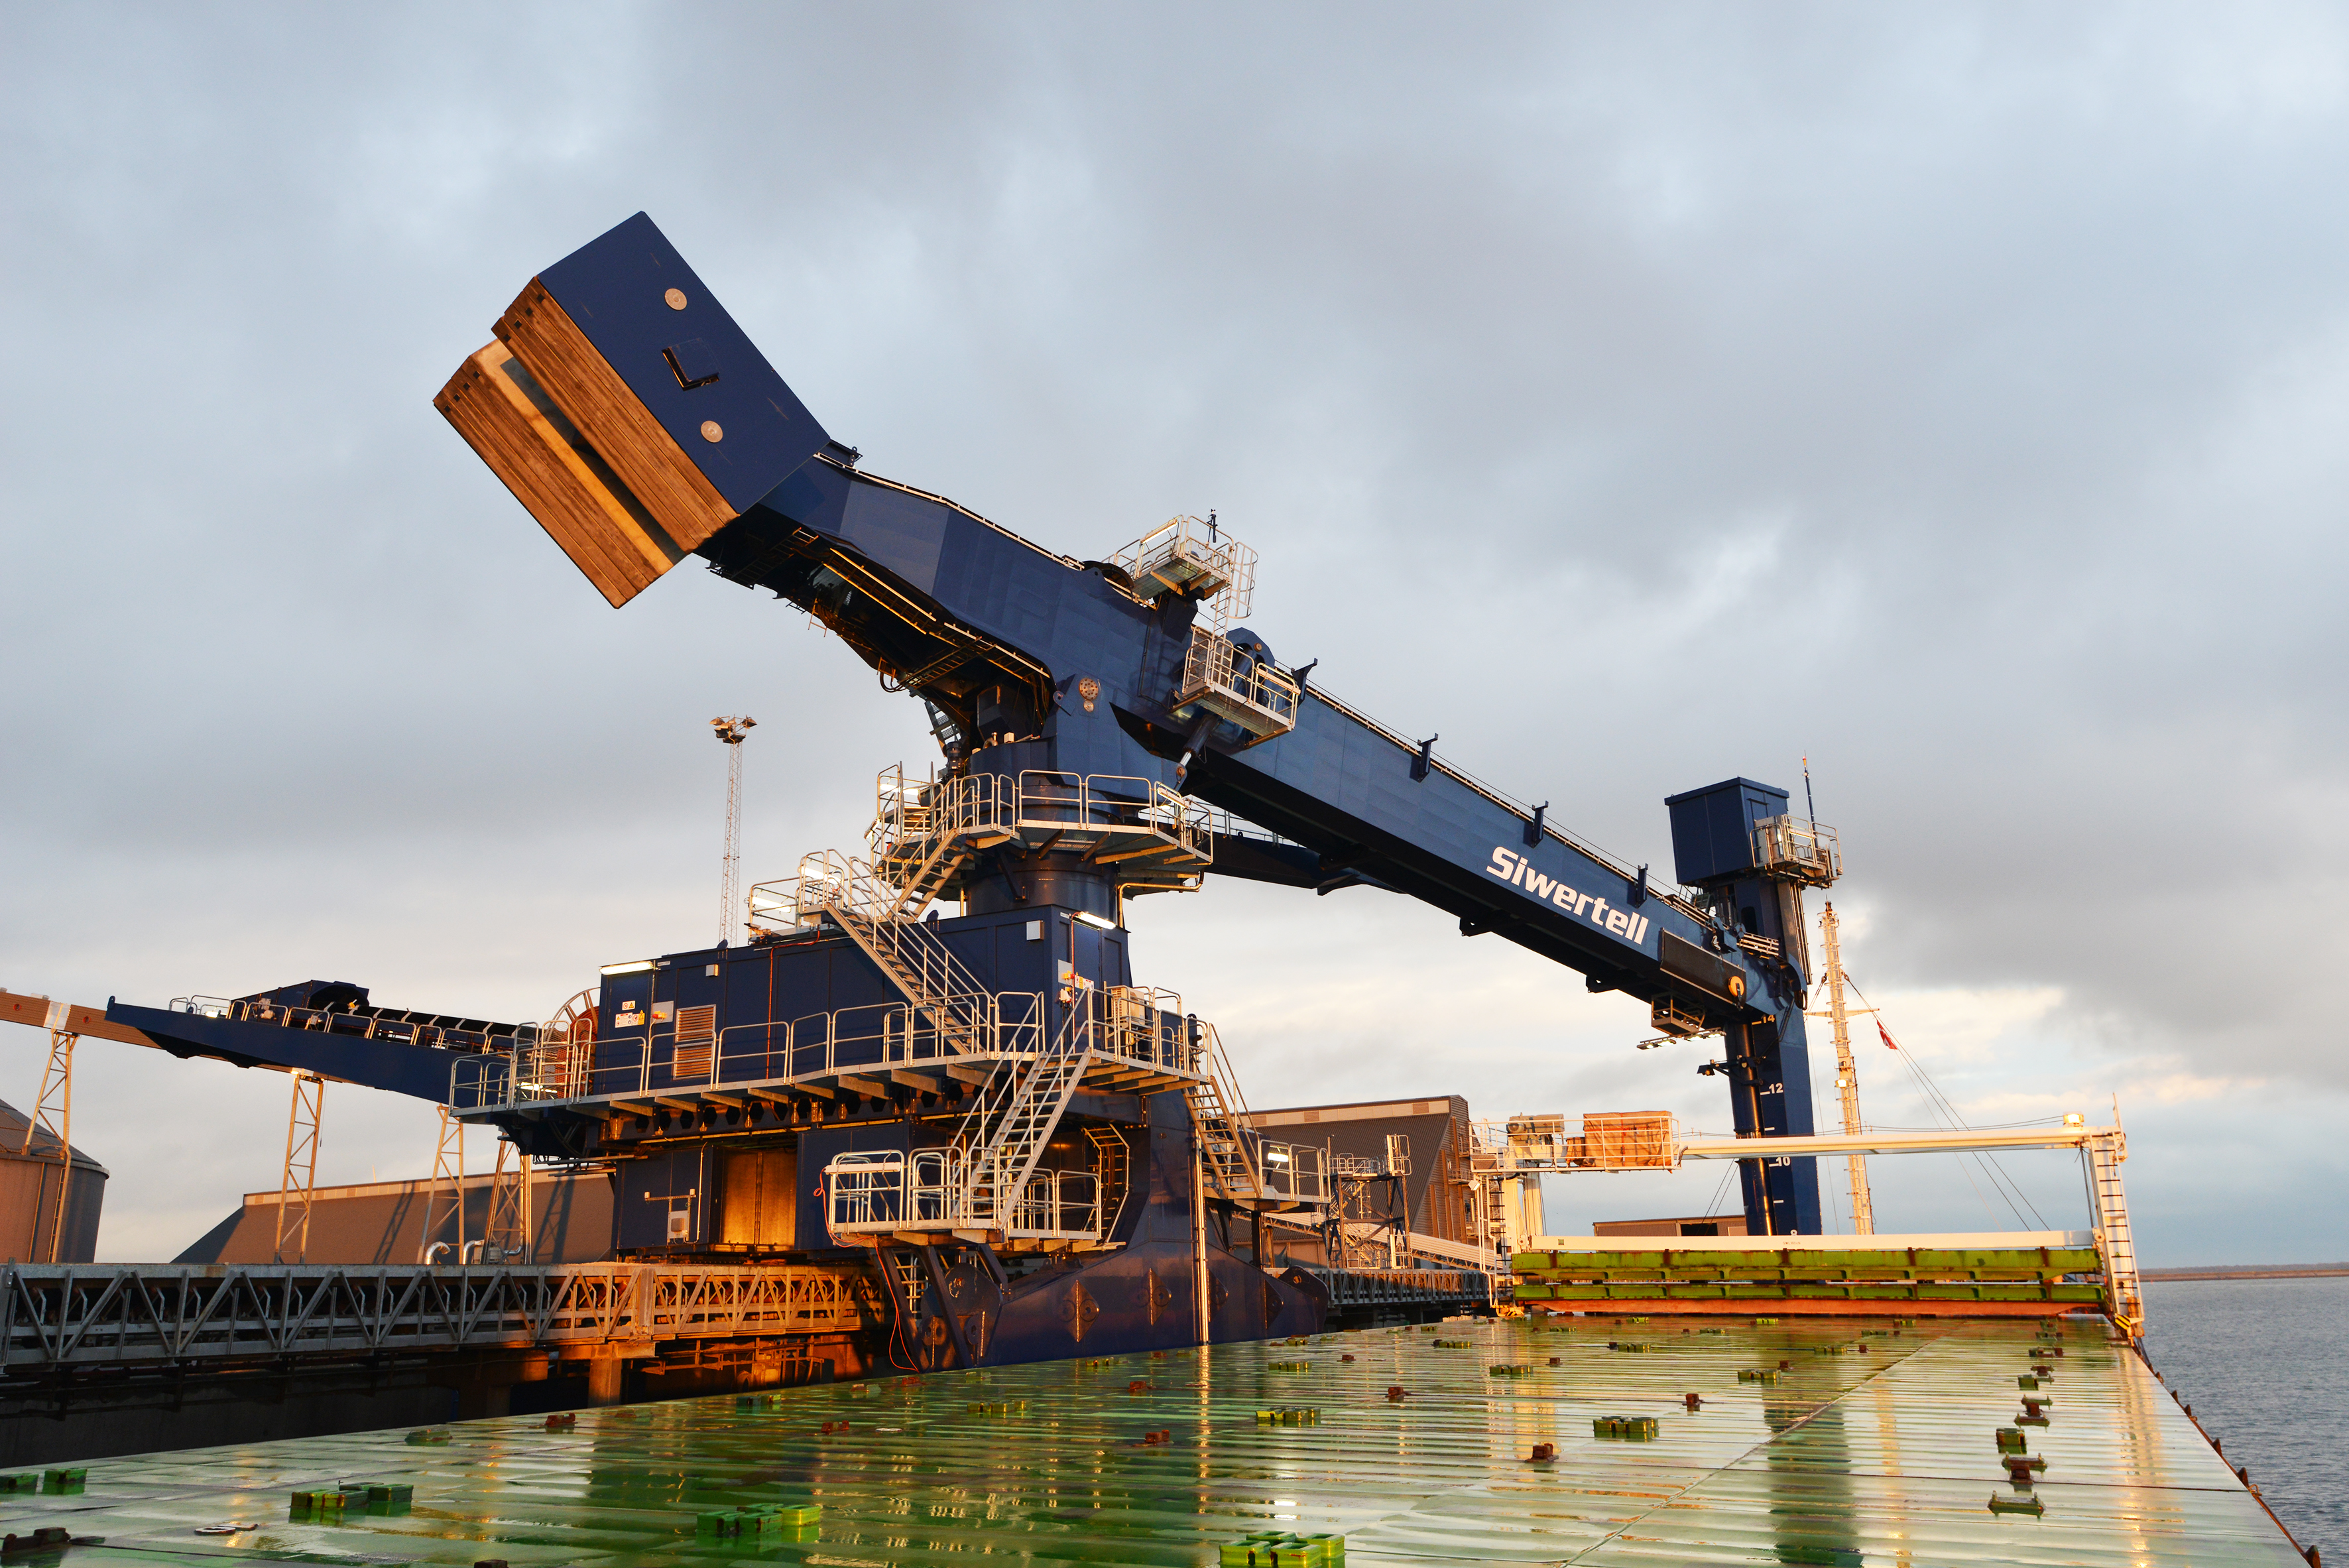 The Siwertell ship-unloader will discharge ships up to 20,000 dwt at a peak capacity of 700 tph